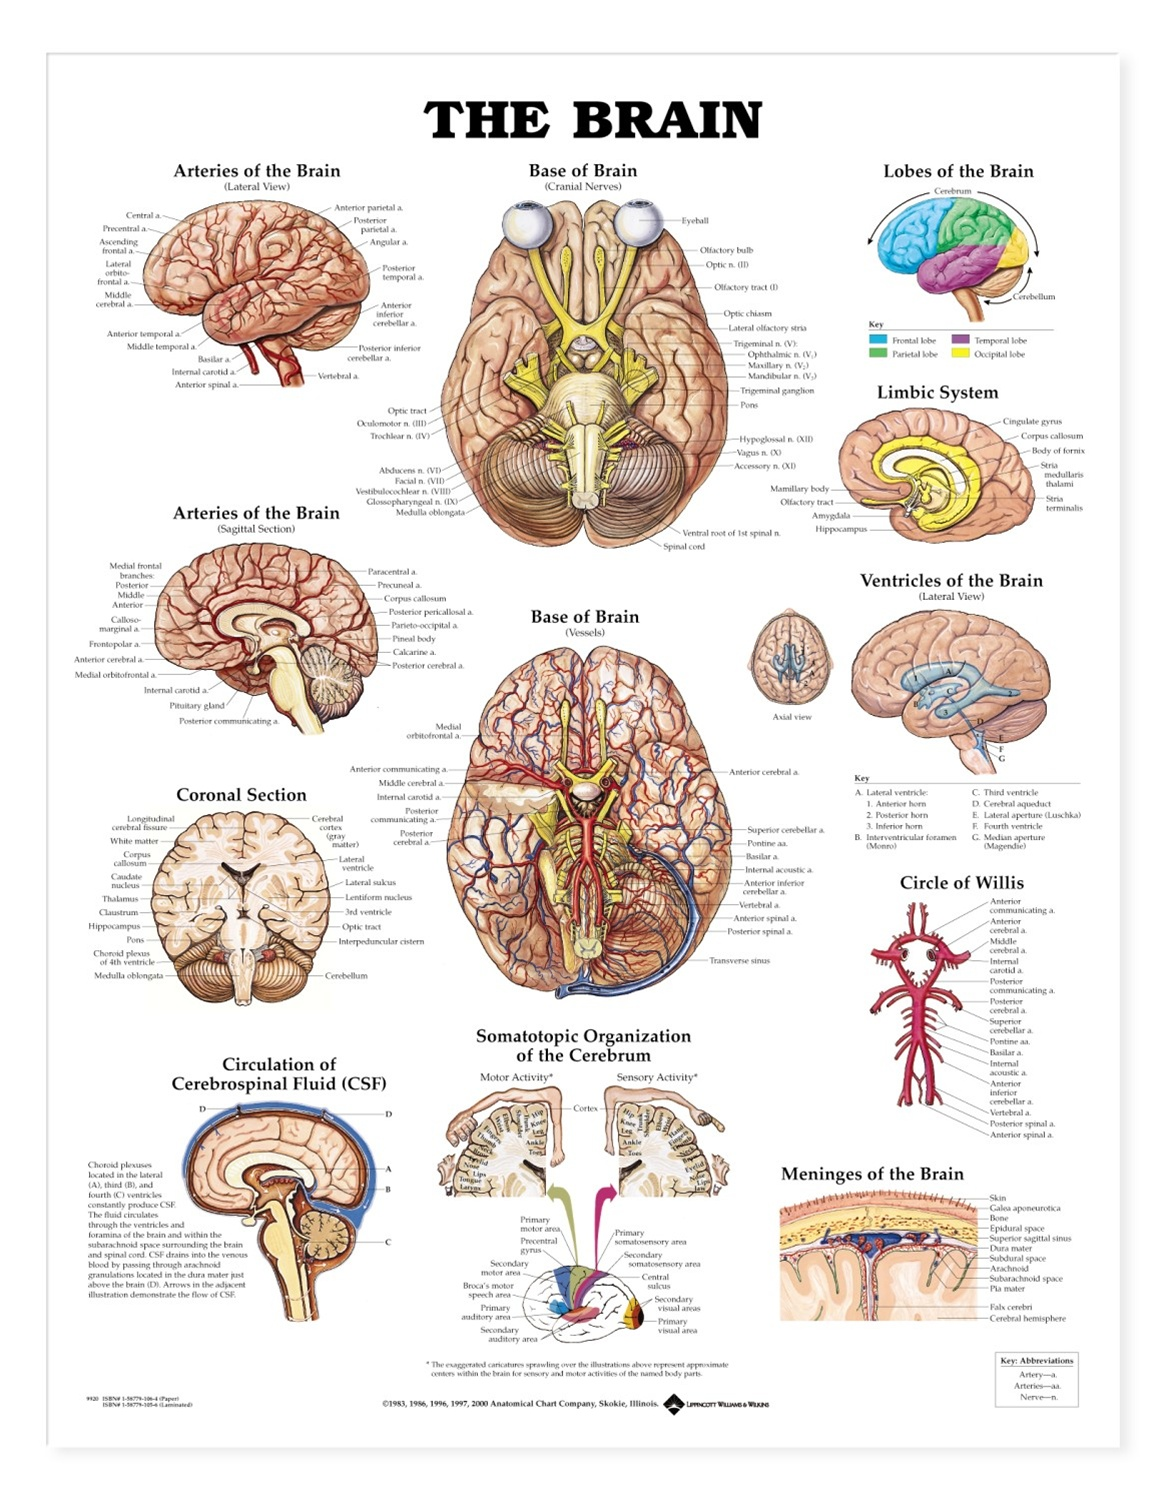 The Brain Anatomical Chart Anatomy Models And Anatomical Charts